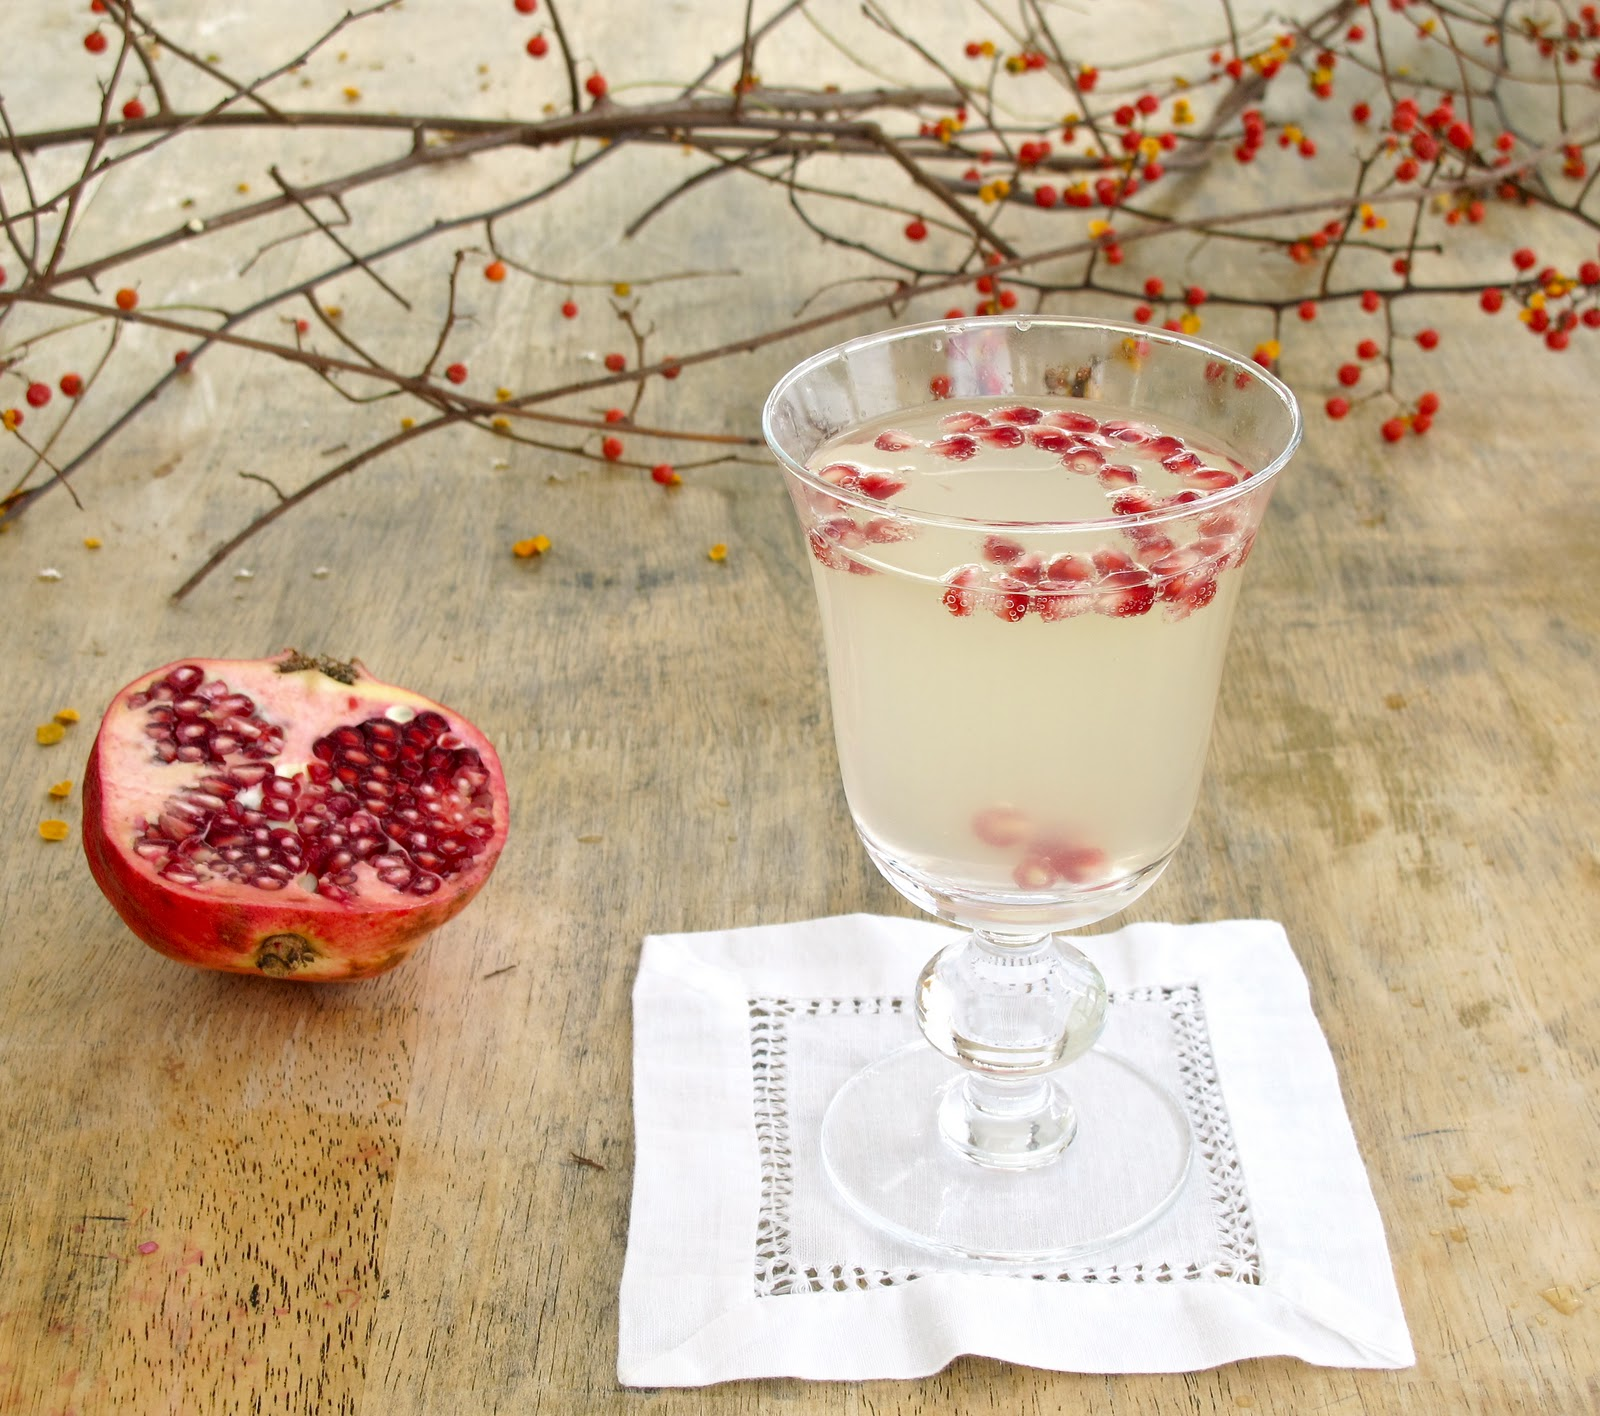 Jenny Steffens Hobick Recipes: Jenny Steffens Hobick: Pineapple Vanilla Flirtini With